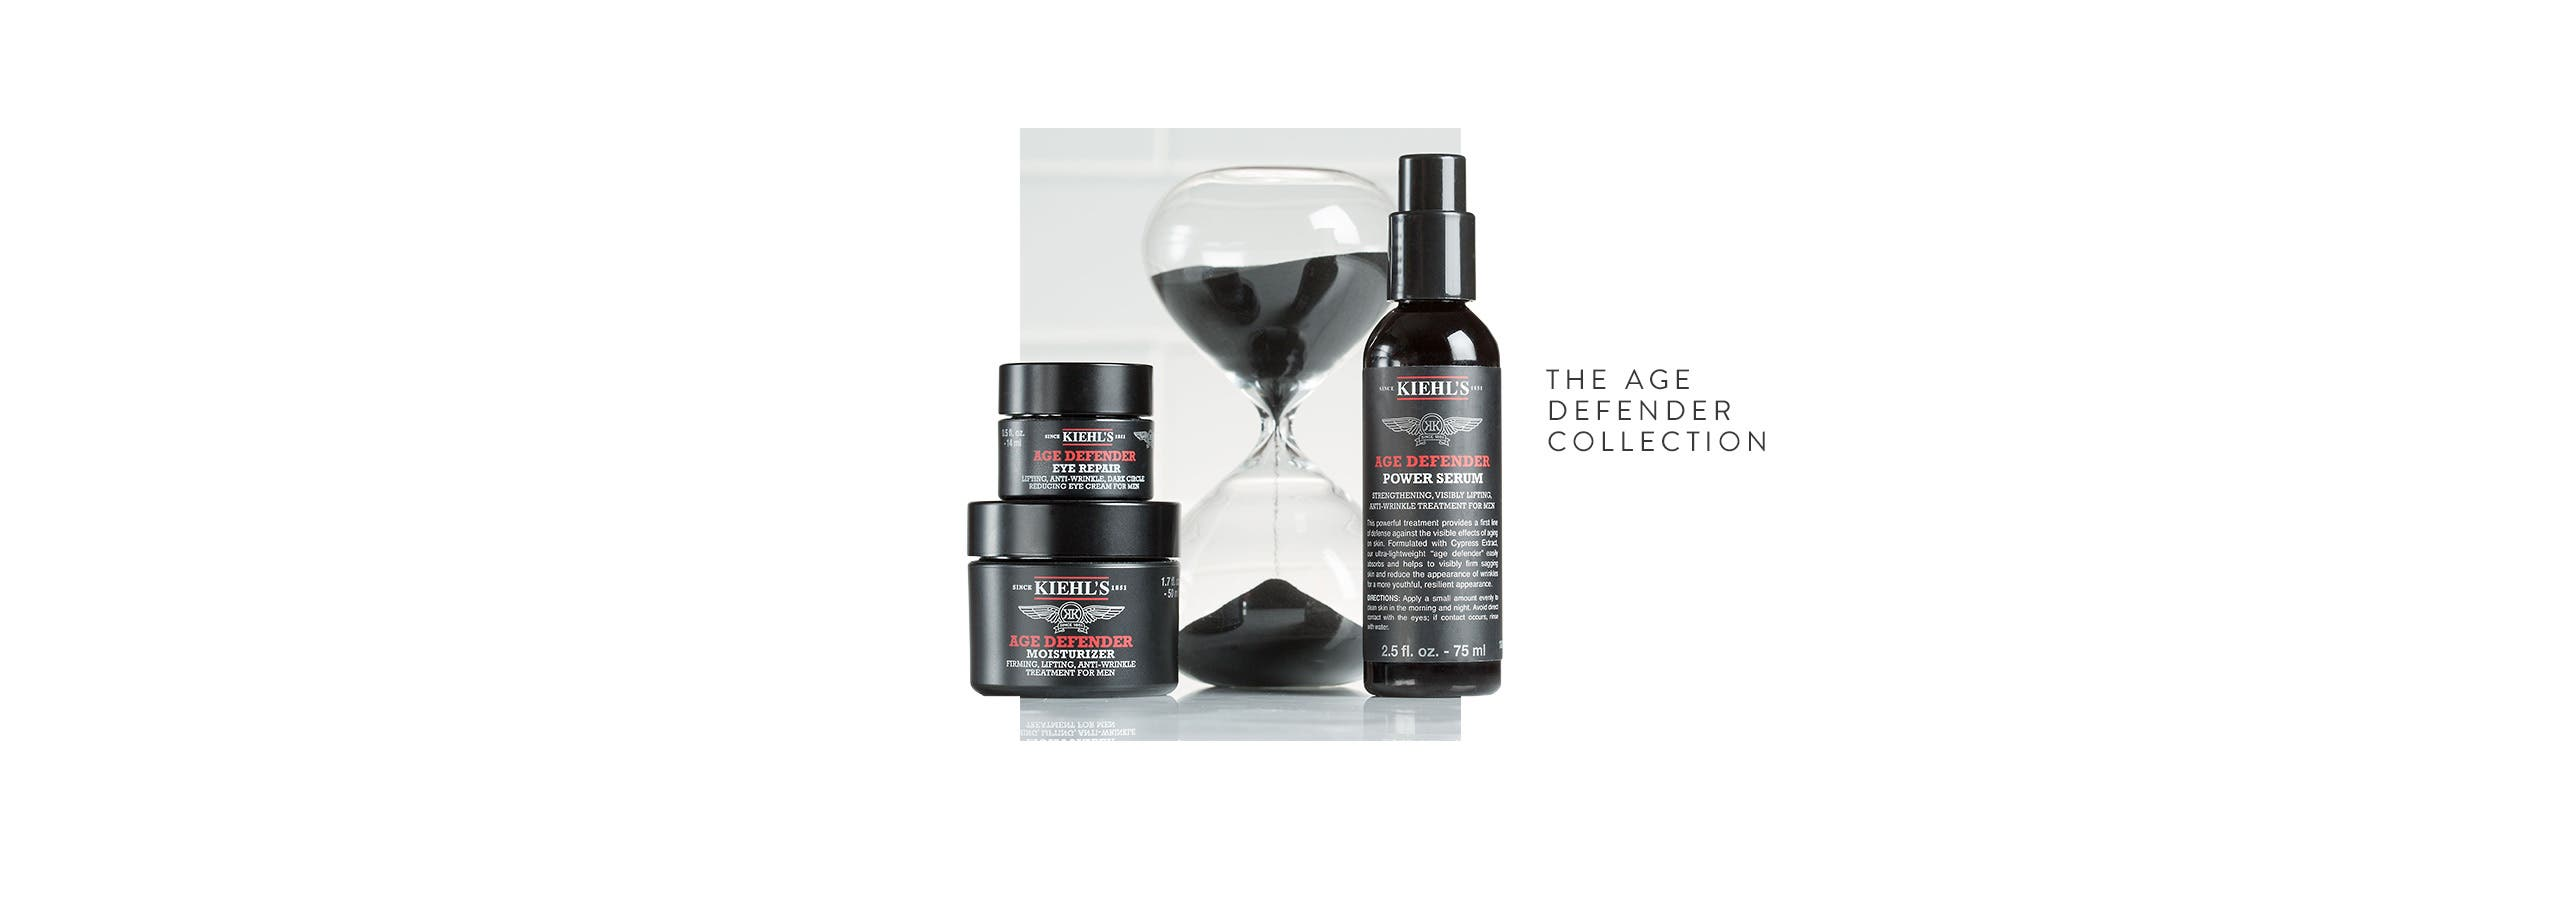 Kiehl's Age Defender collection for men.